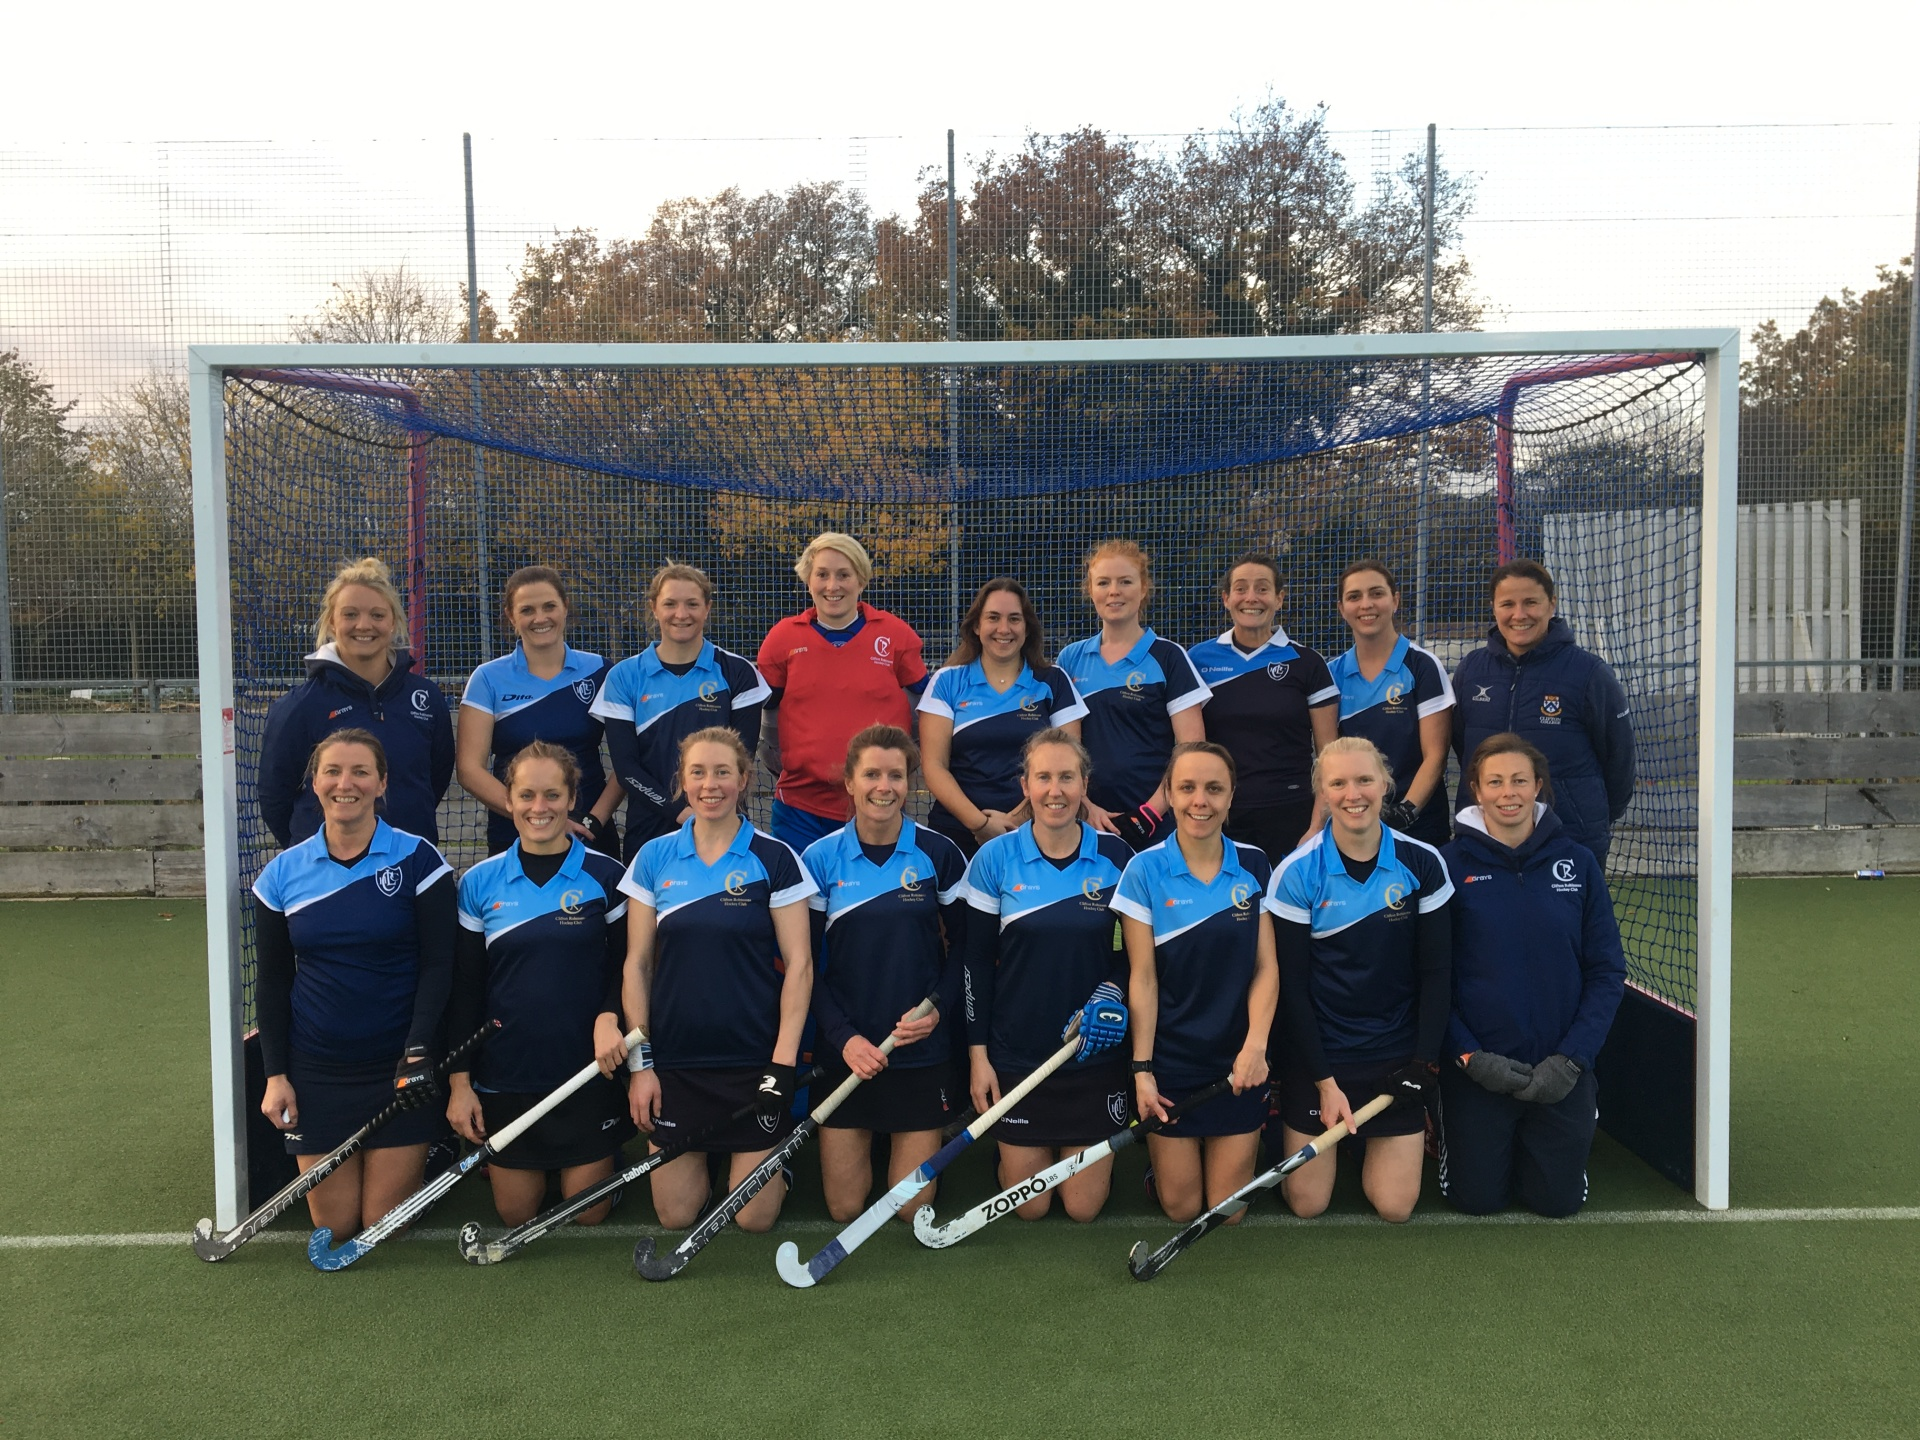 CRHC Ladies Over 35's V Taunton Vale Over 35's